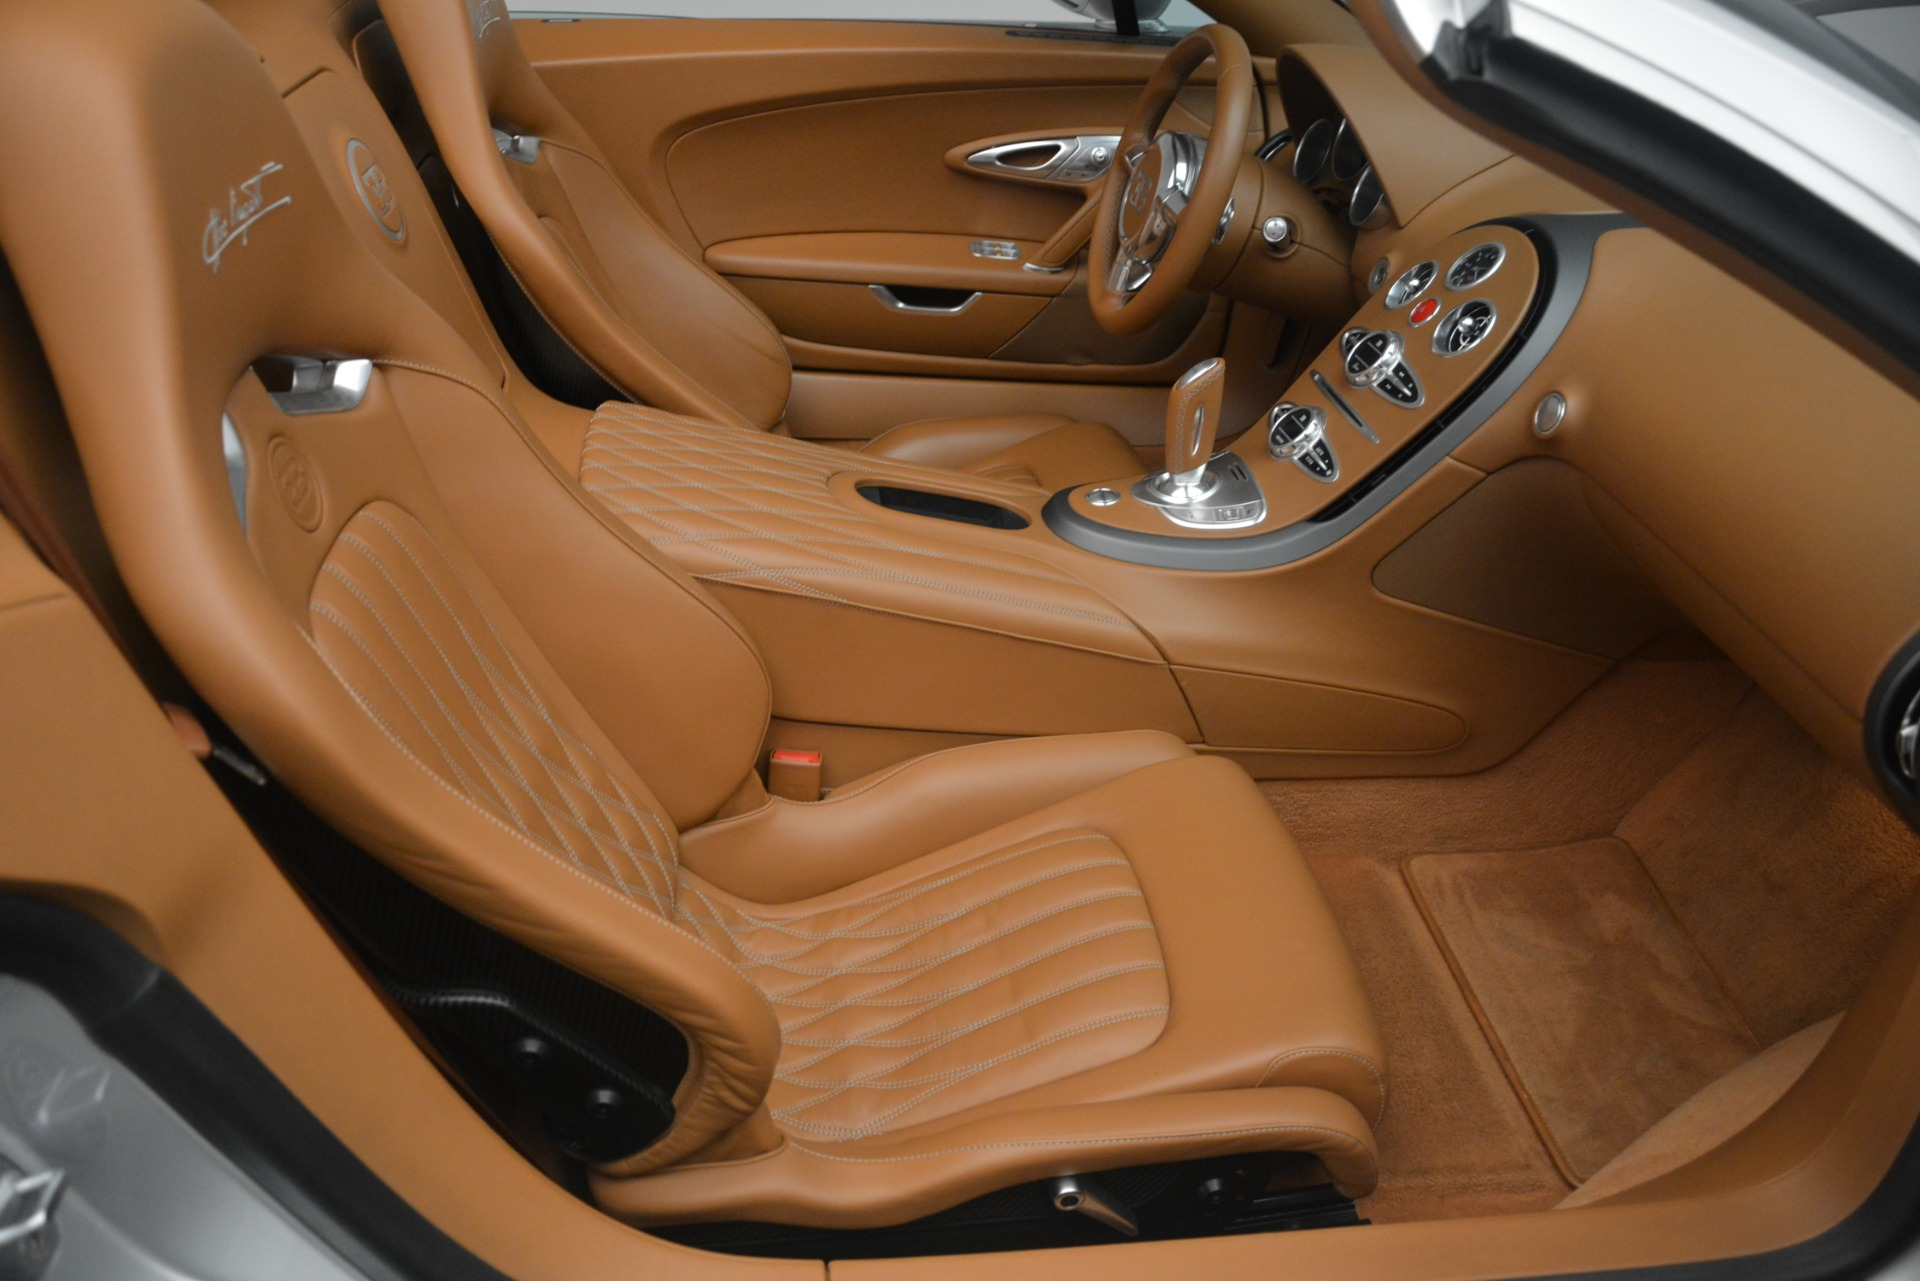 Used 2010 Bugatti Veyron 16.4 Grand Sport For Sale In Greenwich, CT. Alfa Romeo of Greenwich, G149 3159_p34